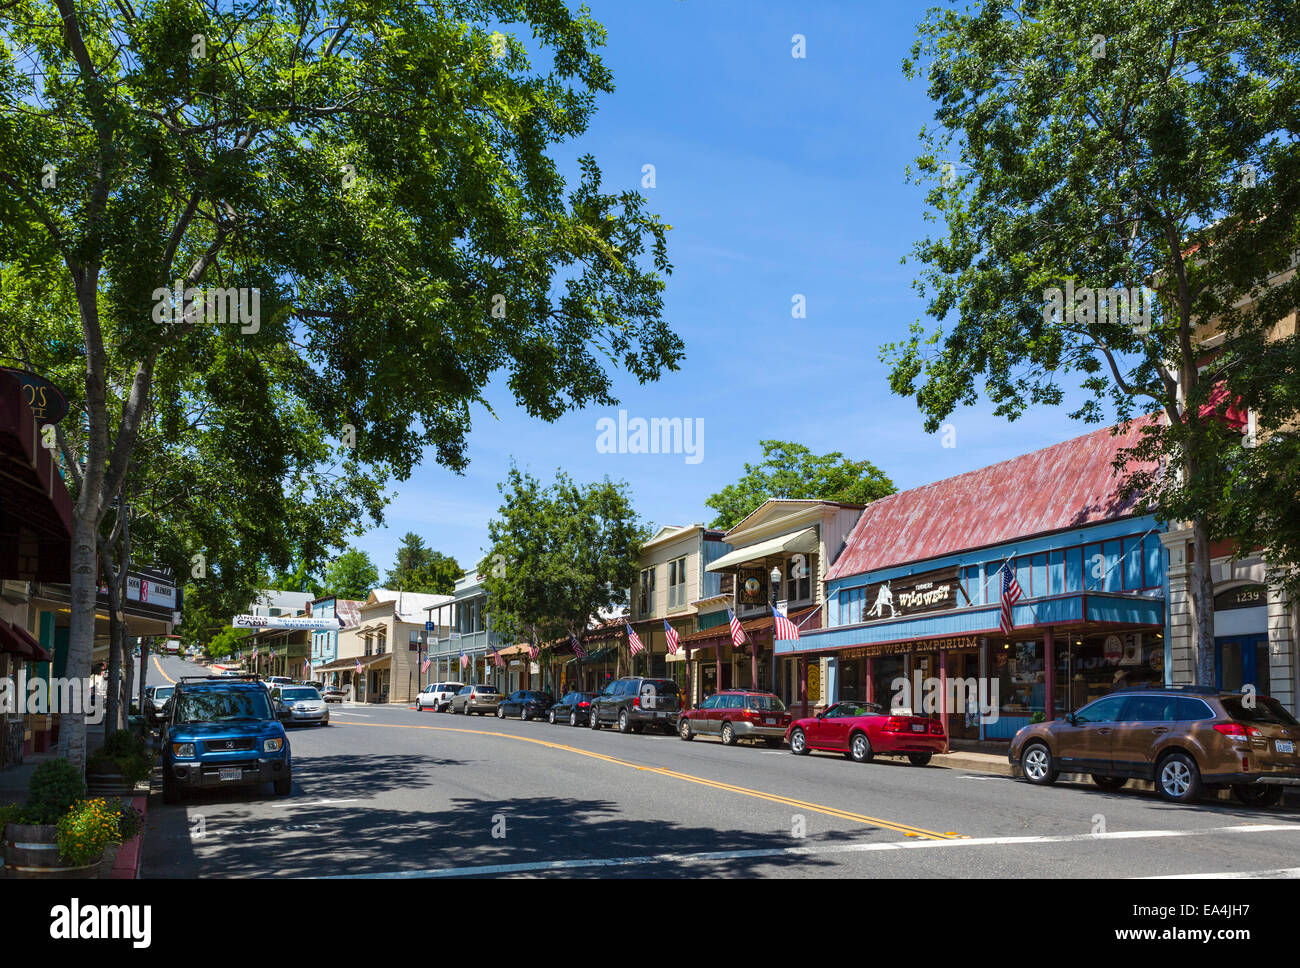 Main Street in the old gold mining town of Angels Camp, Calaveras County, Southern Gold Country, California, USA - Stock Image